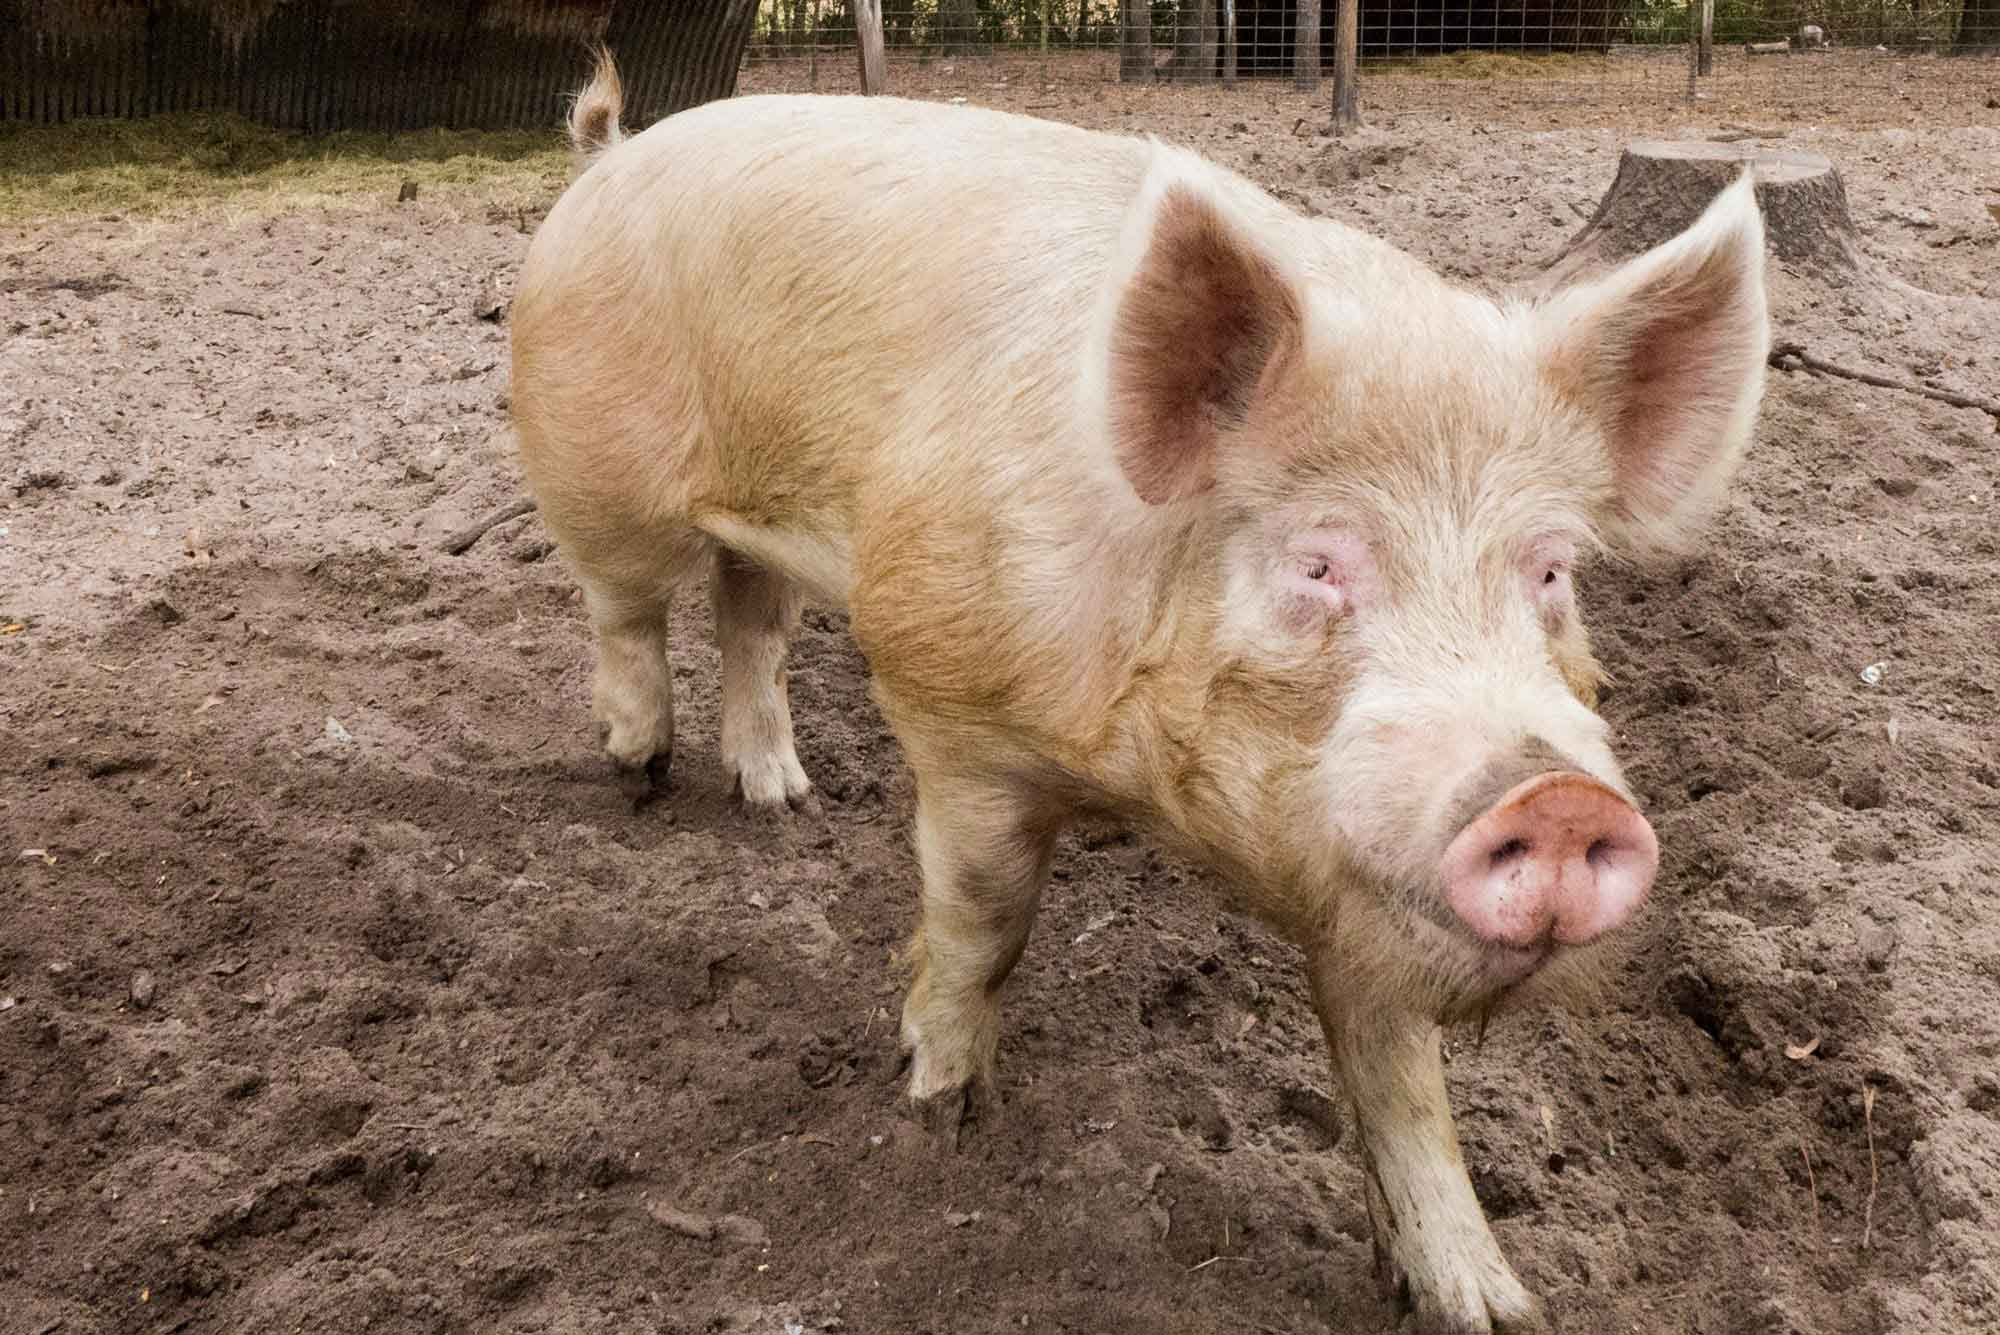 Living over a pig sty taught me about war and death